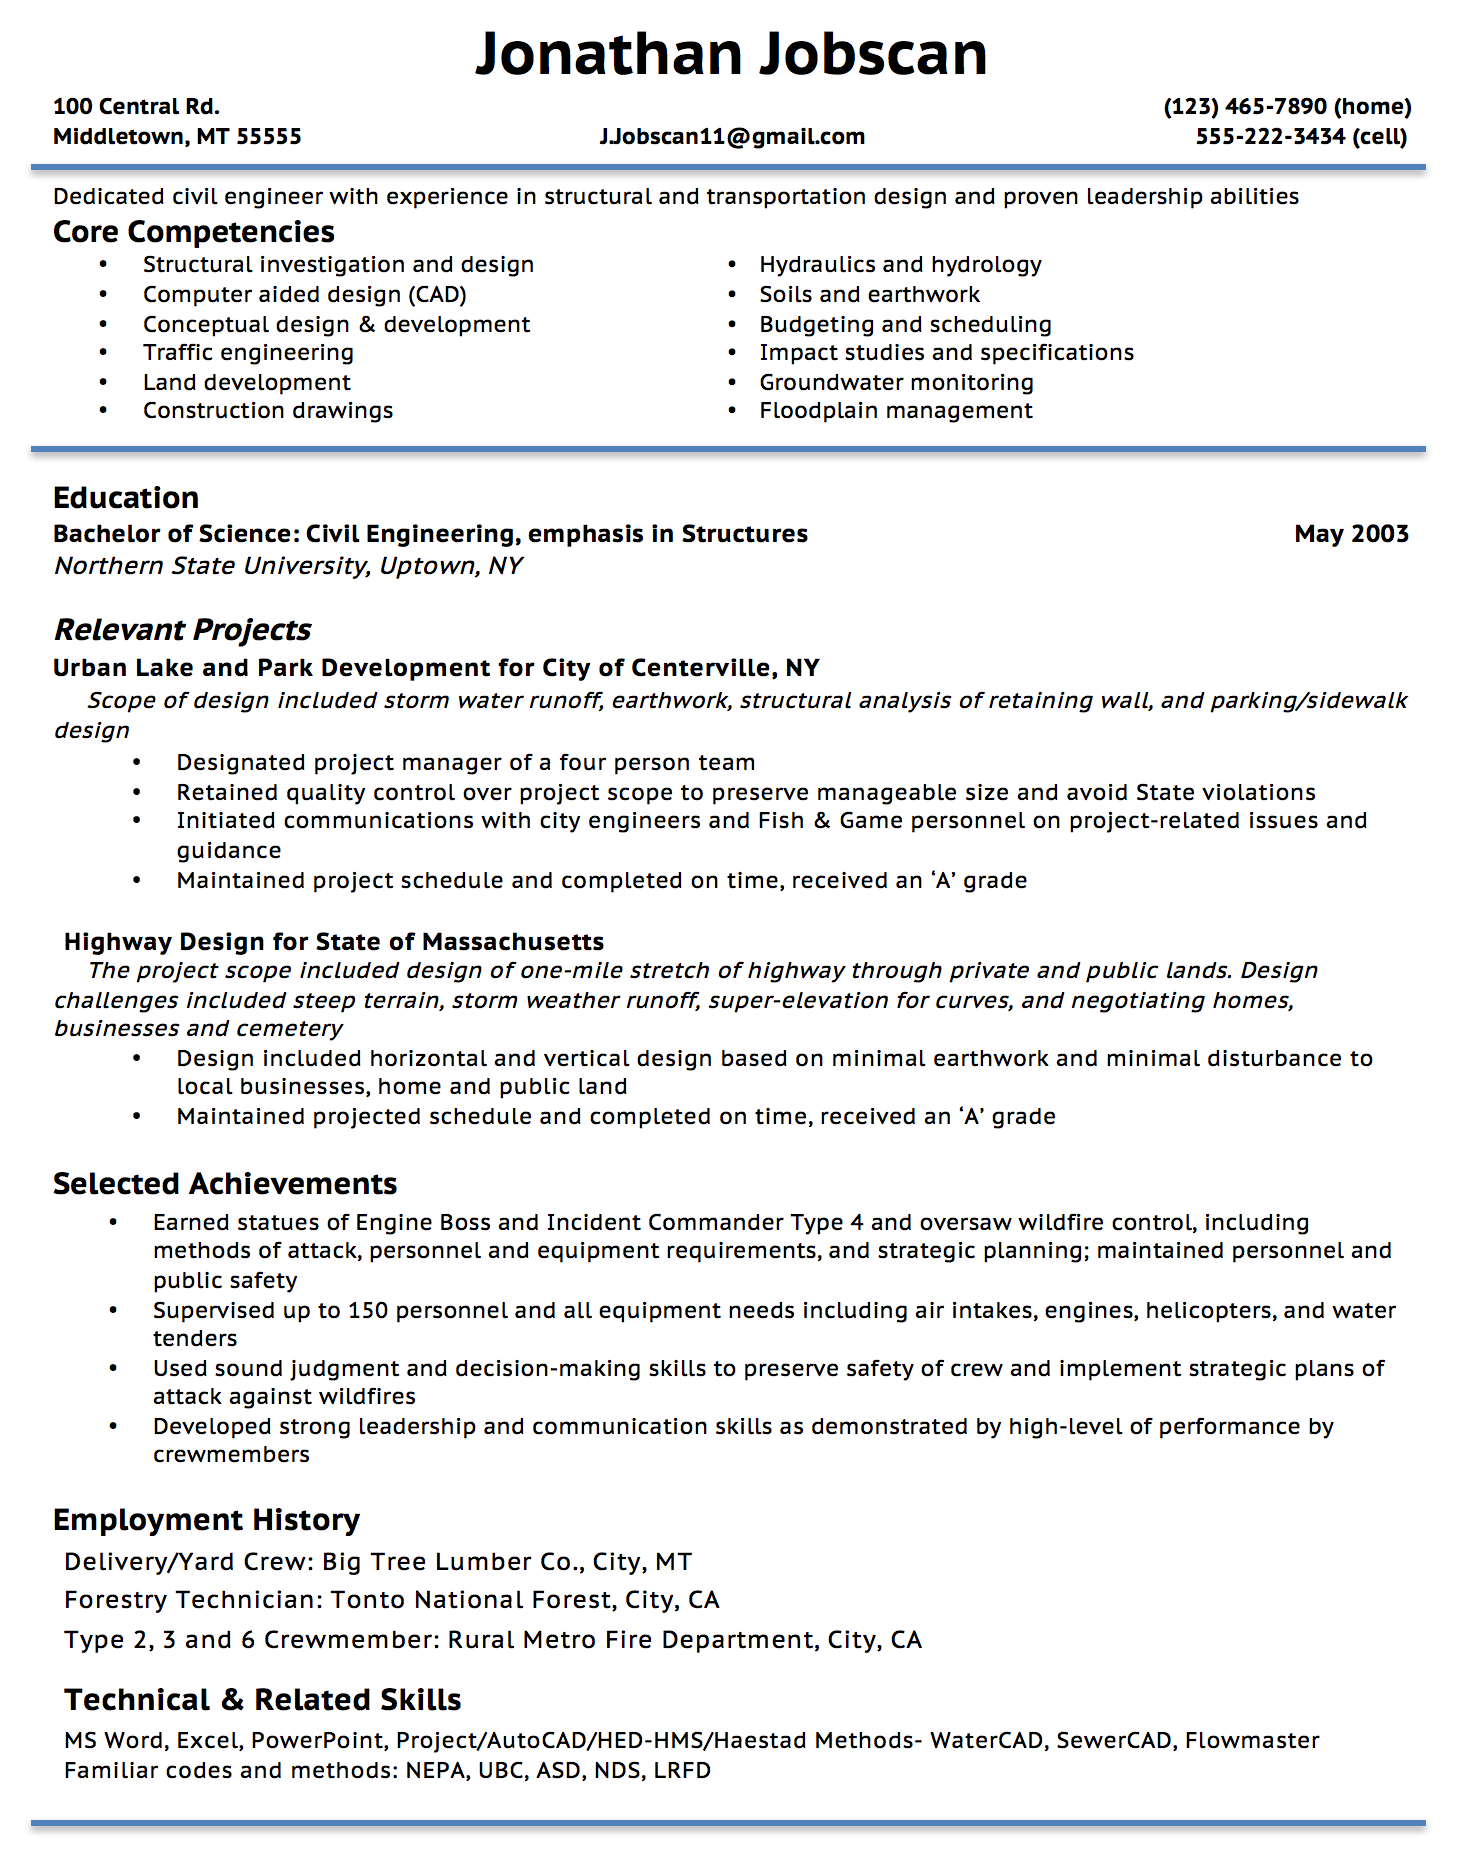 Opposenewapstandardsus  Winning Resume Writing Guide  Jobscan With Fascinating Example Of A Functional Resume Format With Archaic Need Help With Resume Also Social Media Resumes In Addition Outside Sales Resume Examples And Resume For Retail Sales Associate As Well As Resume For Changing Careers Additionally Electricians Resume From Jobscanco With Opposenewapstandardsus  Fascinating Resume Writing Guide  Jobscan With Archaic Example Of A Functional Resume Format And Winning Need Help With Resume Also Social Media Resumes In Addition Outside Sales Resume Examples From Jobscanco